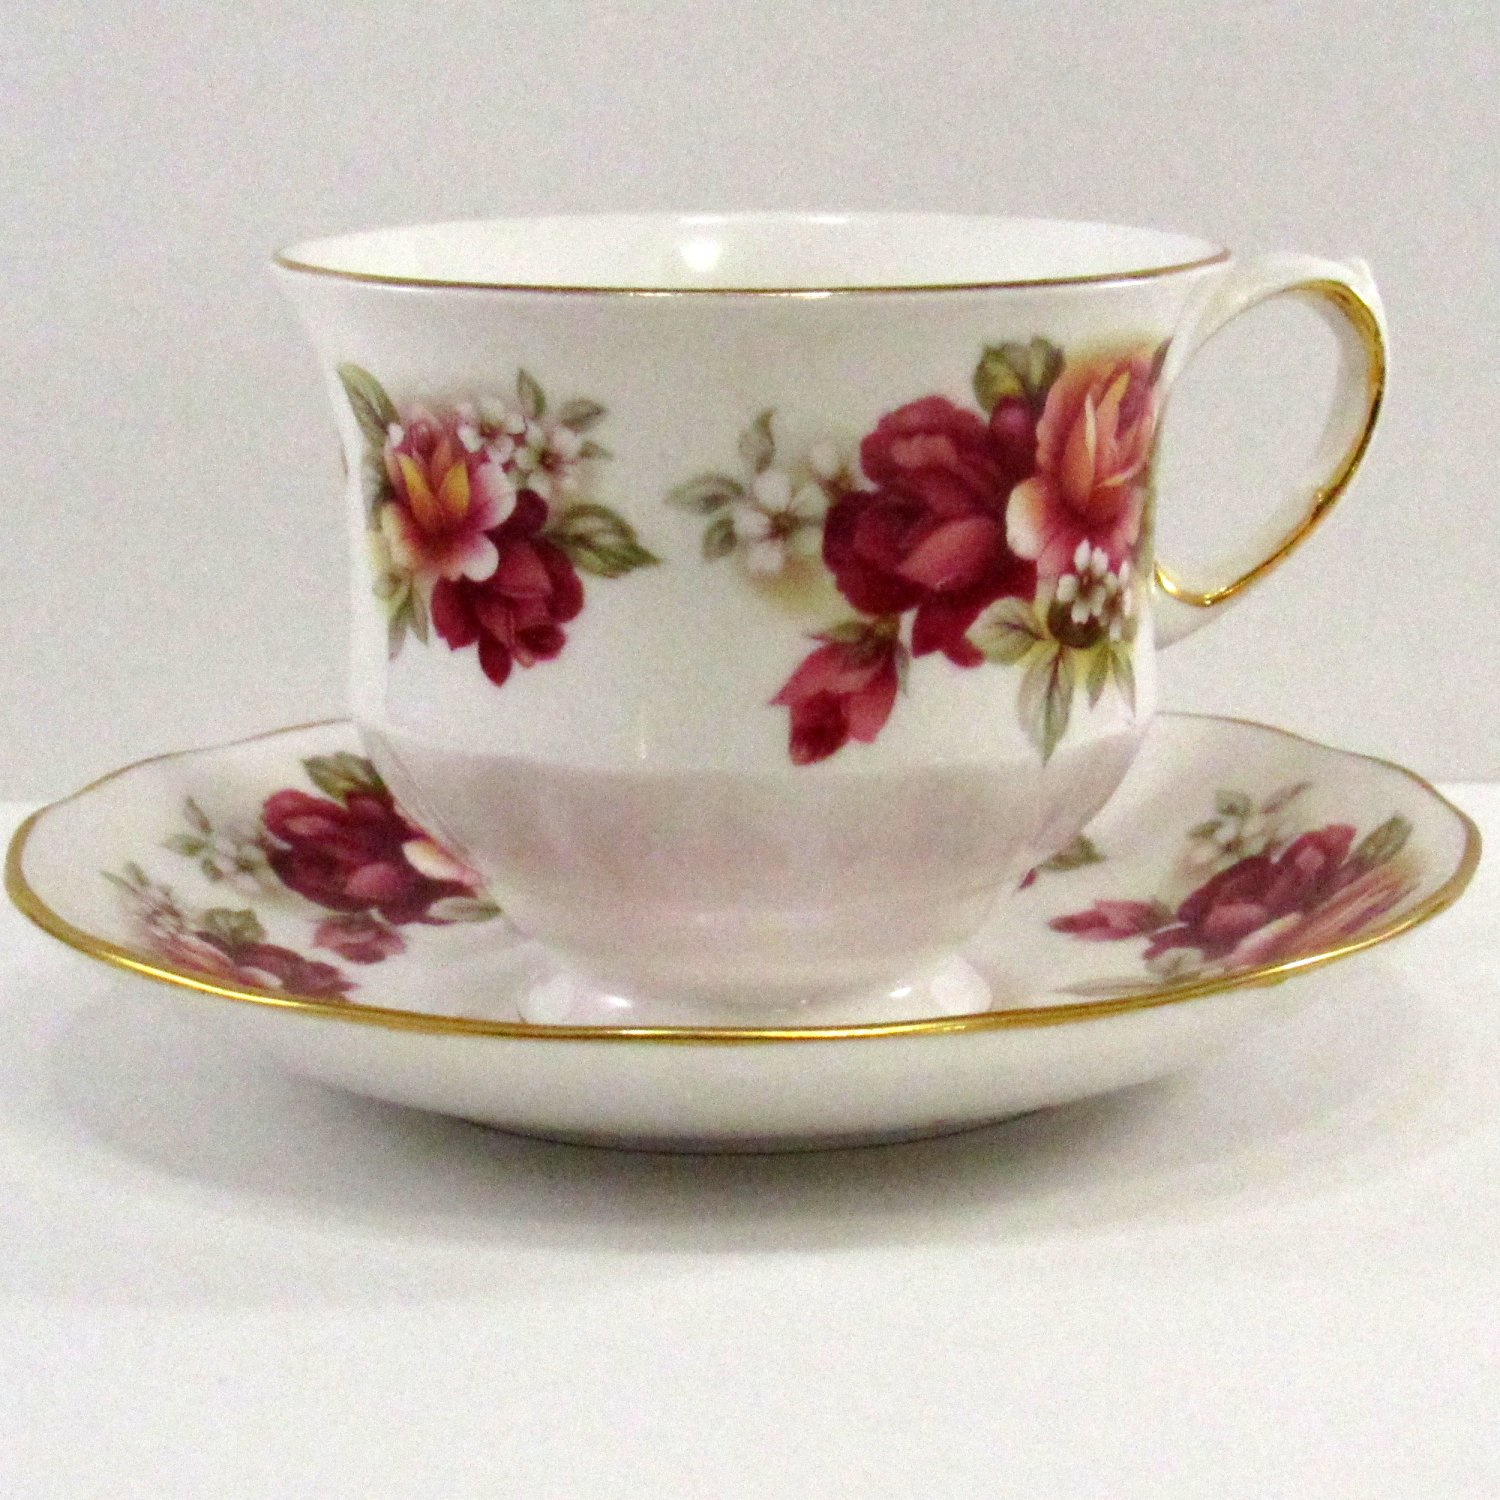 Queen Anne Tea Cup and Saucer #8541 Bone China Ridgeway Potteries England Red and Pink Roses Vintage